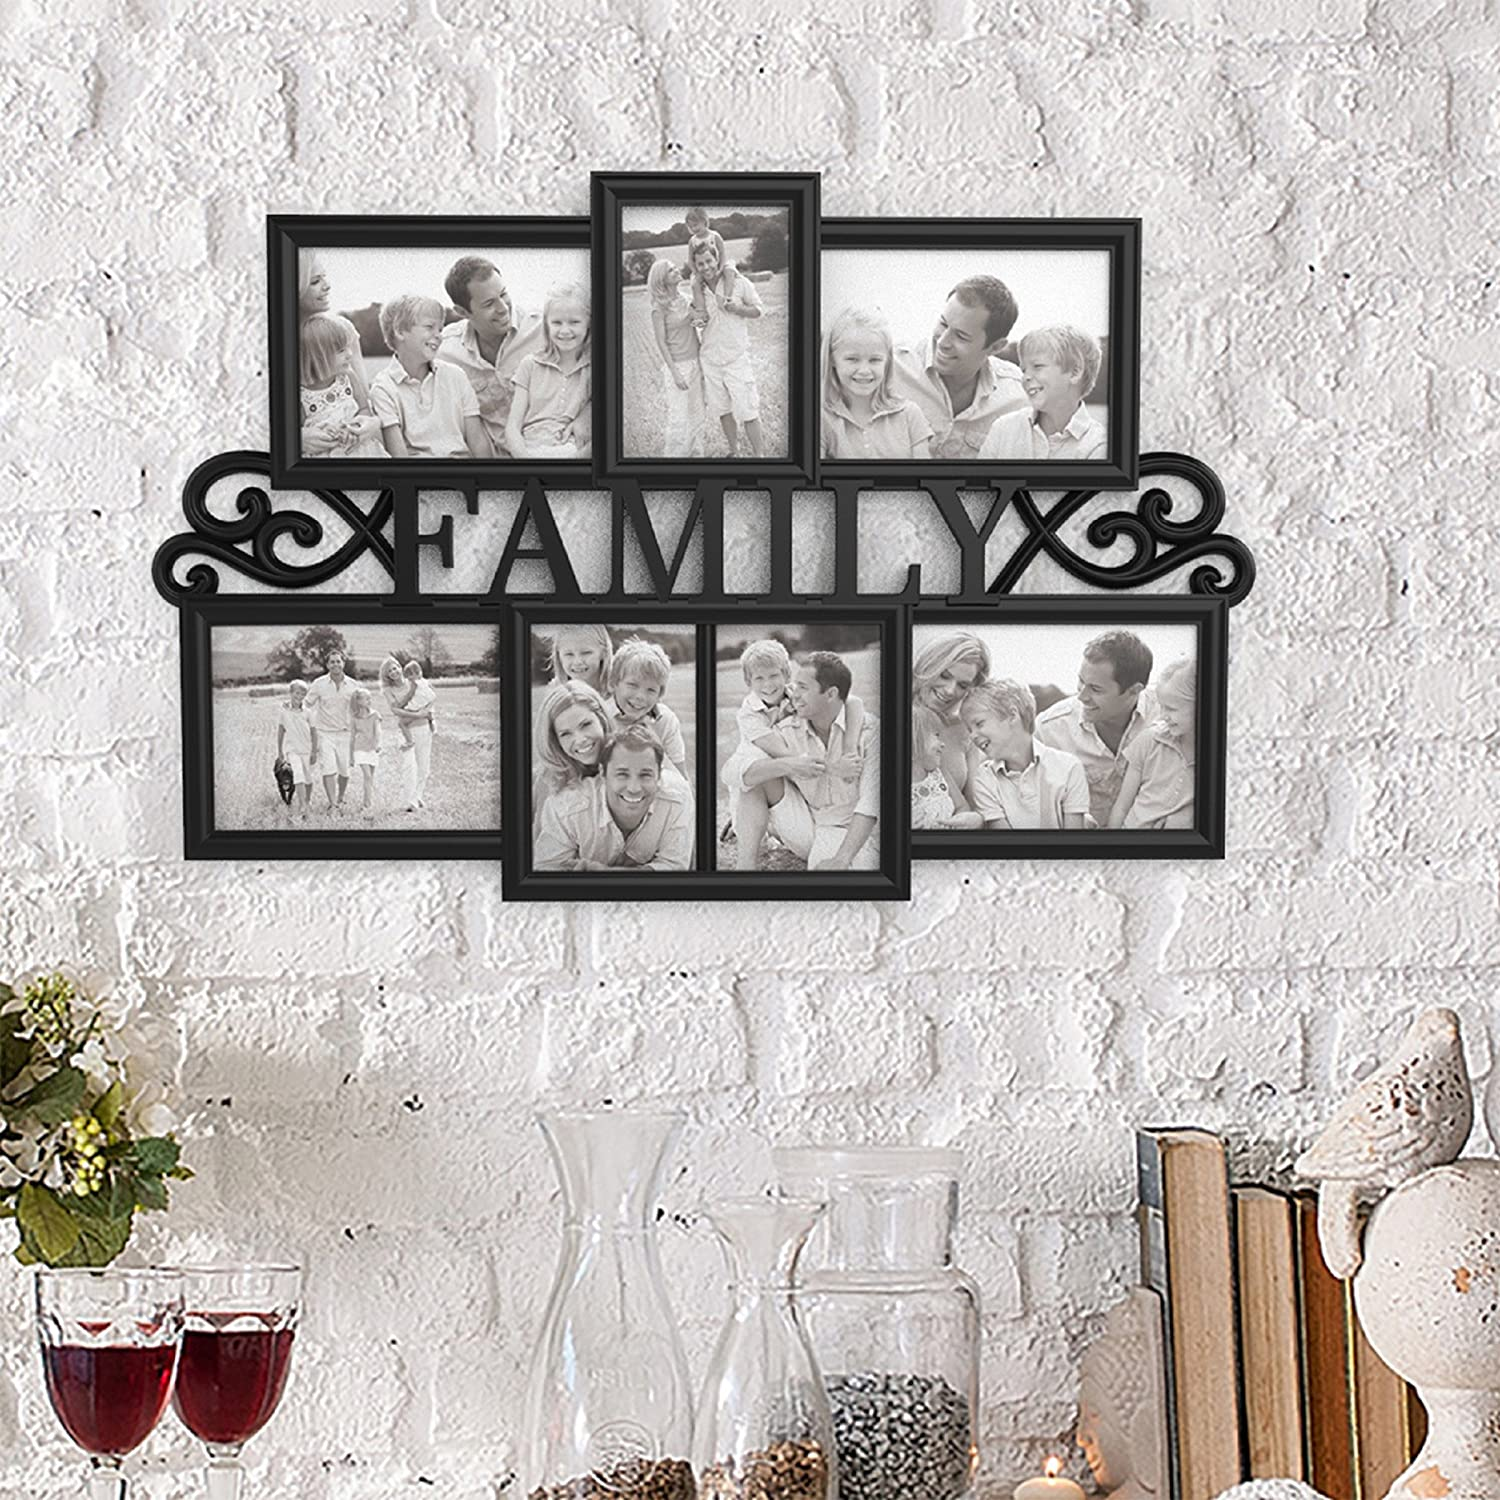 2. Collage Picture Frame